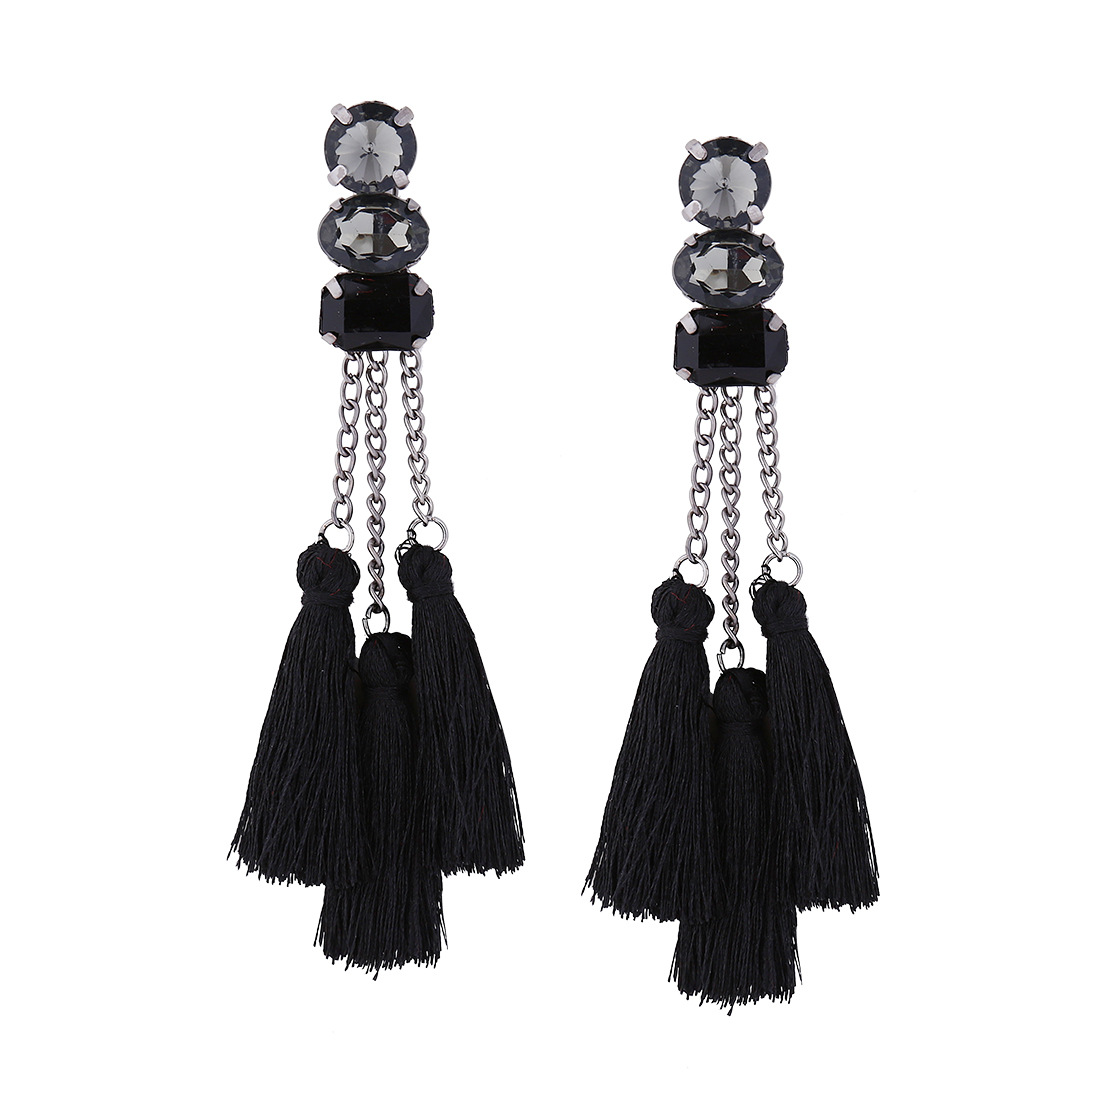 bonbon earrings stud tresor paris crystal jewellery black image